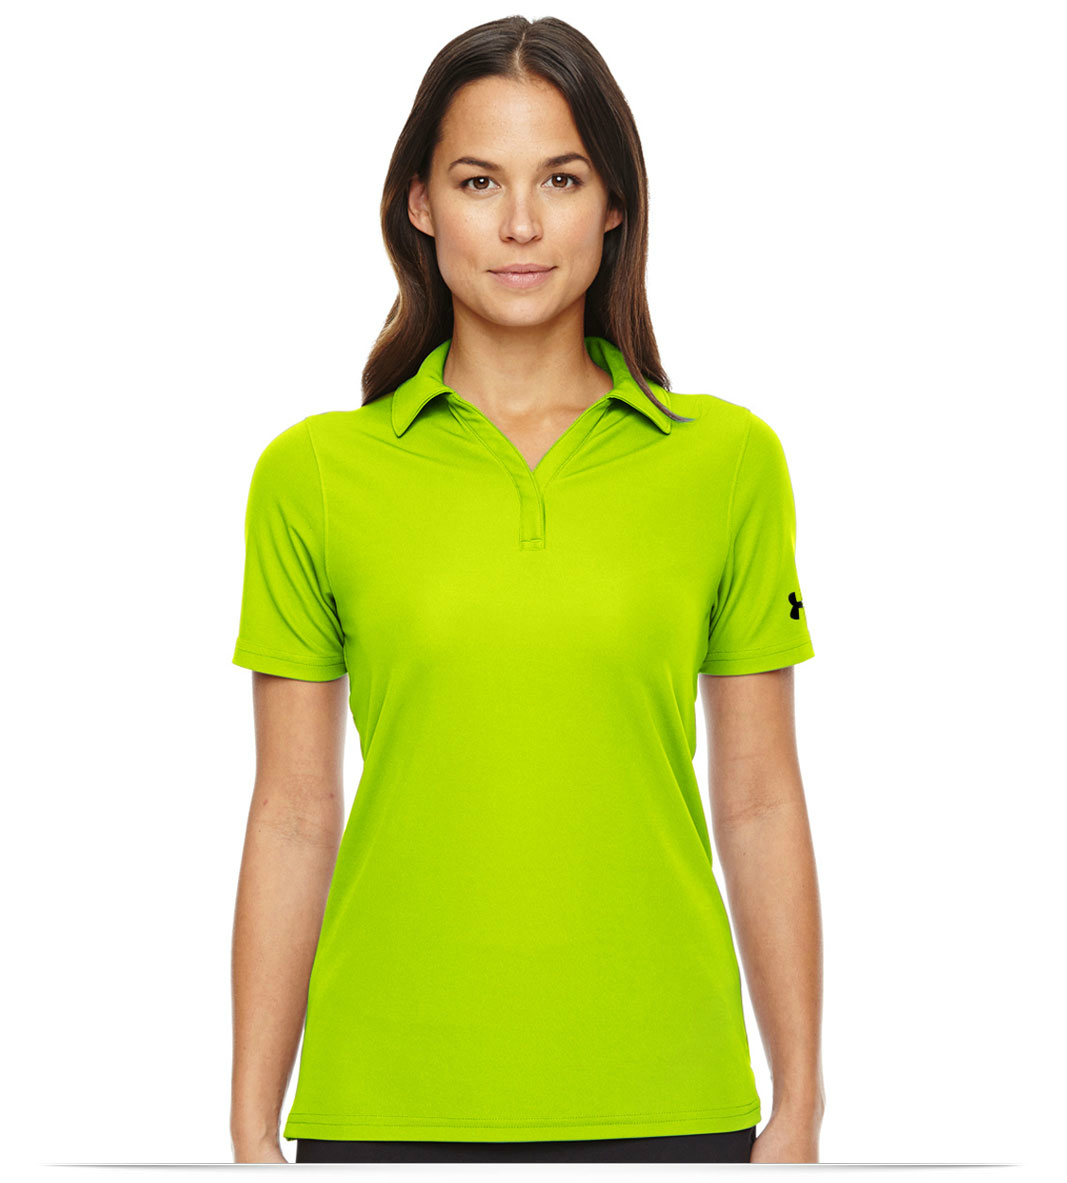 Personalized Under Armour Ladies Corp Performance Polo at AllStar Logo a09ed23e1befa